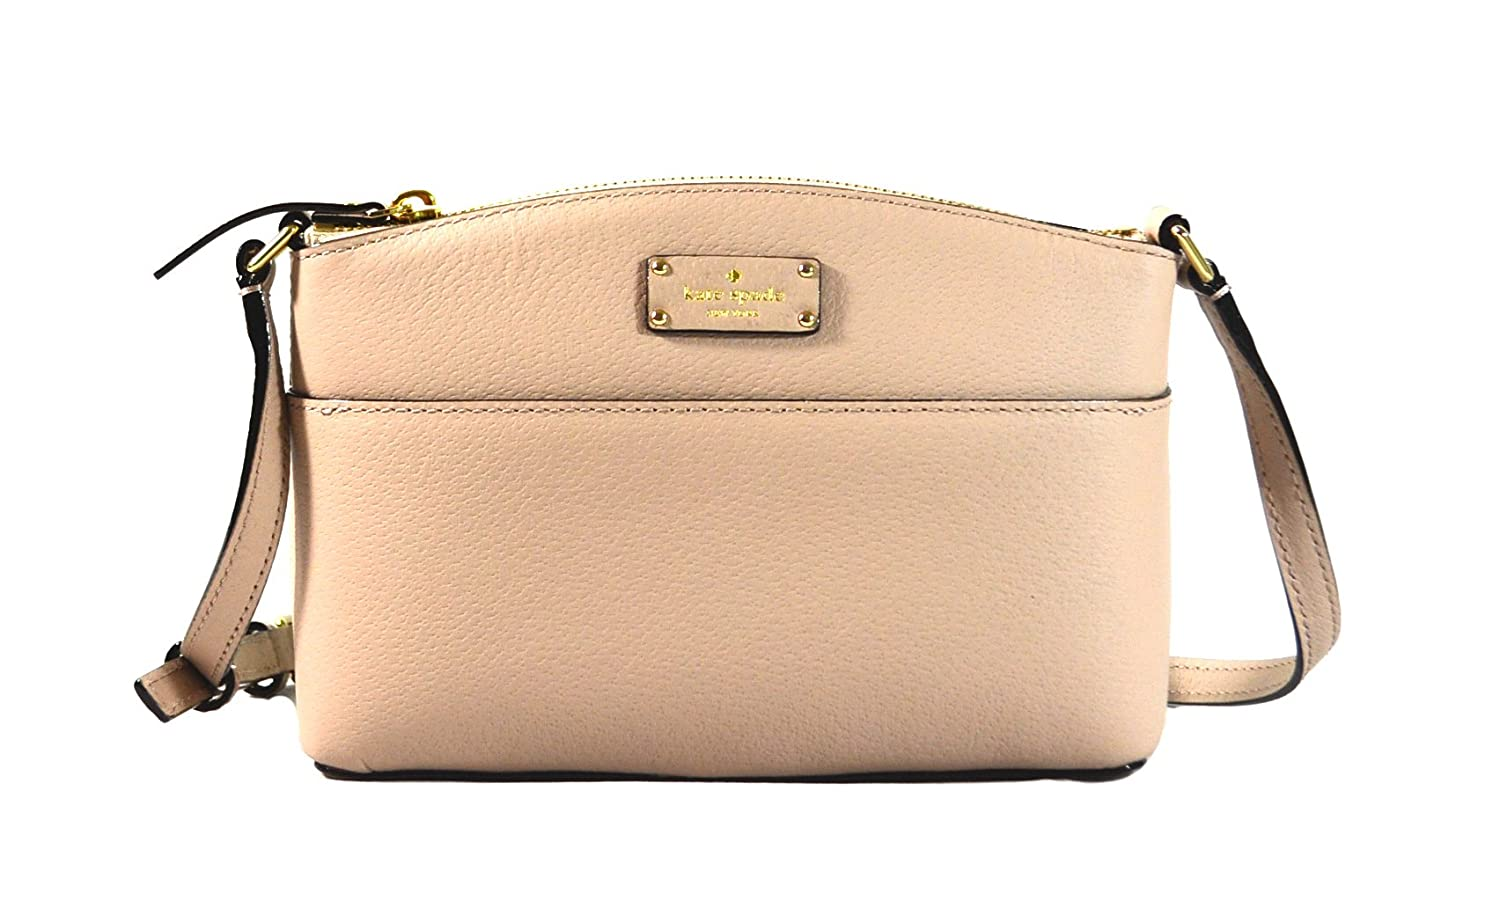 Kate Spade New York Grove Street Millie Leather Shoulder Handbag Purse